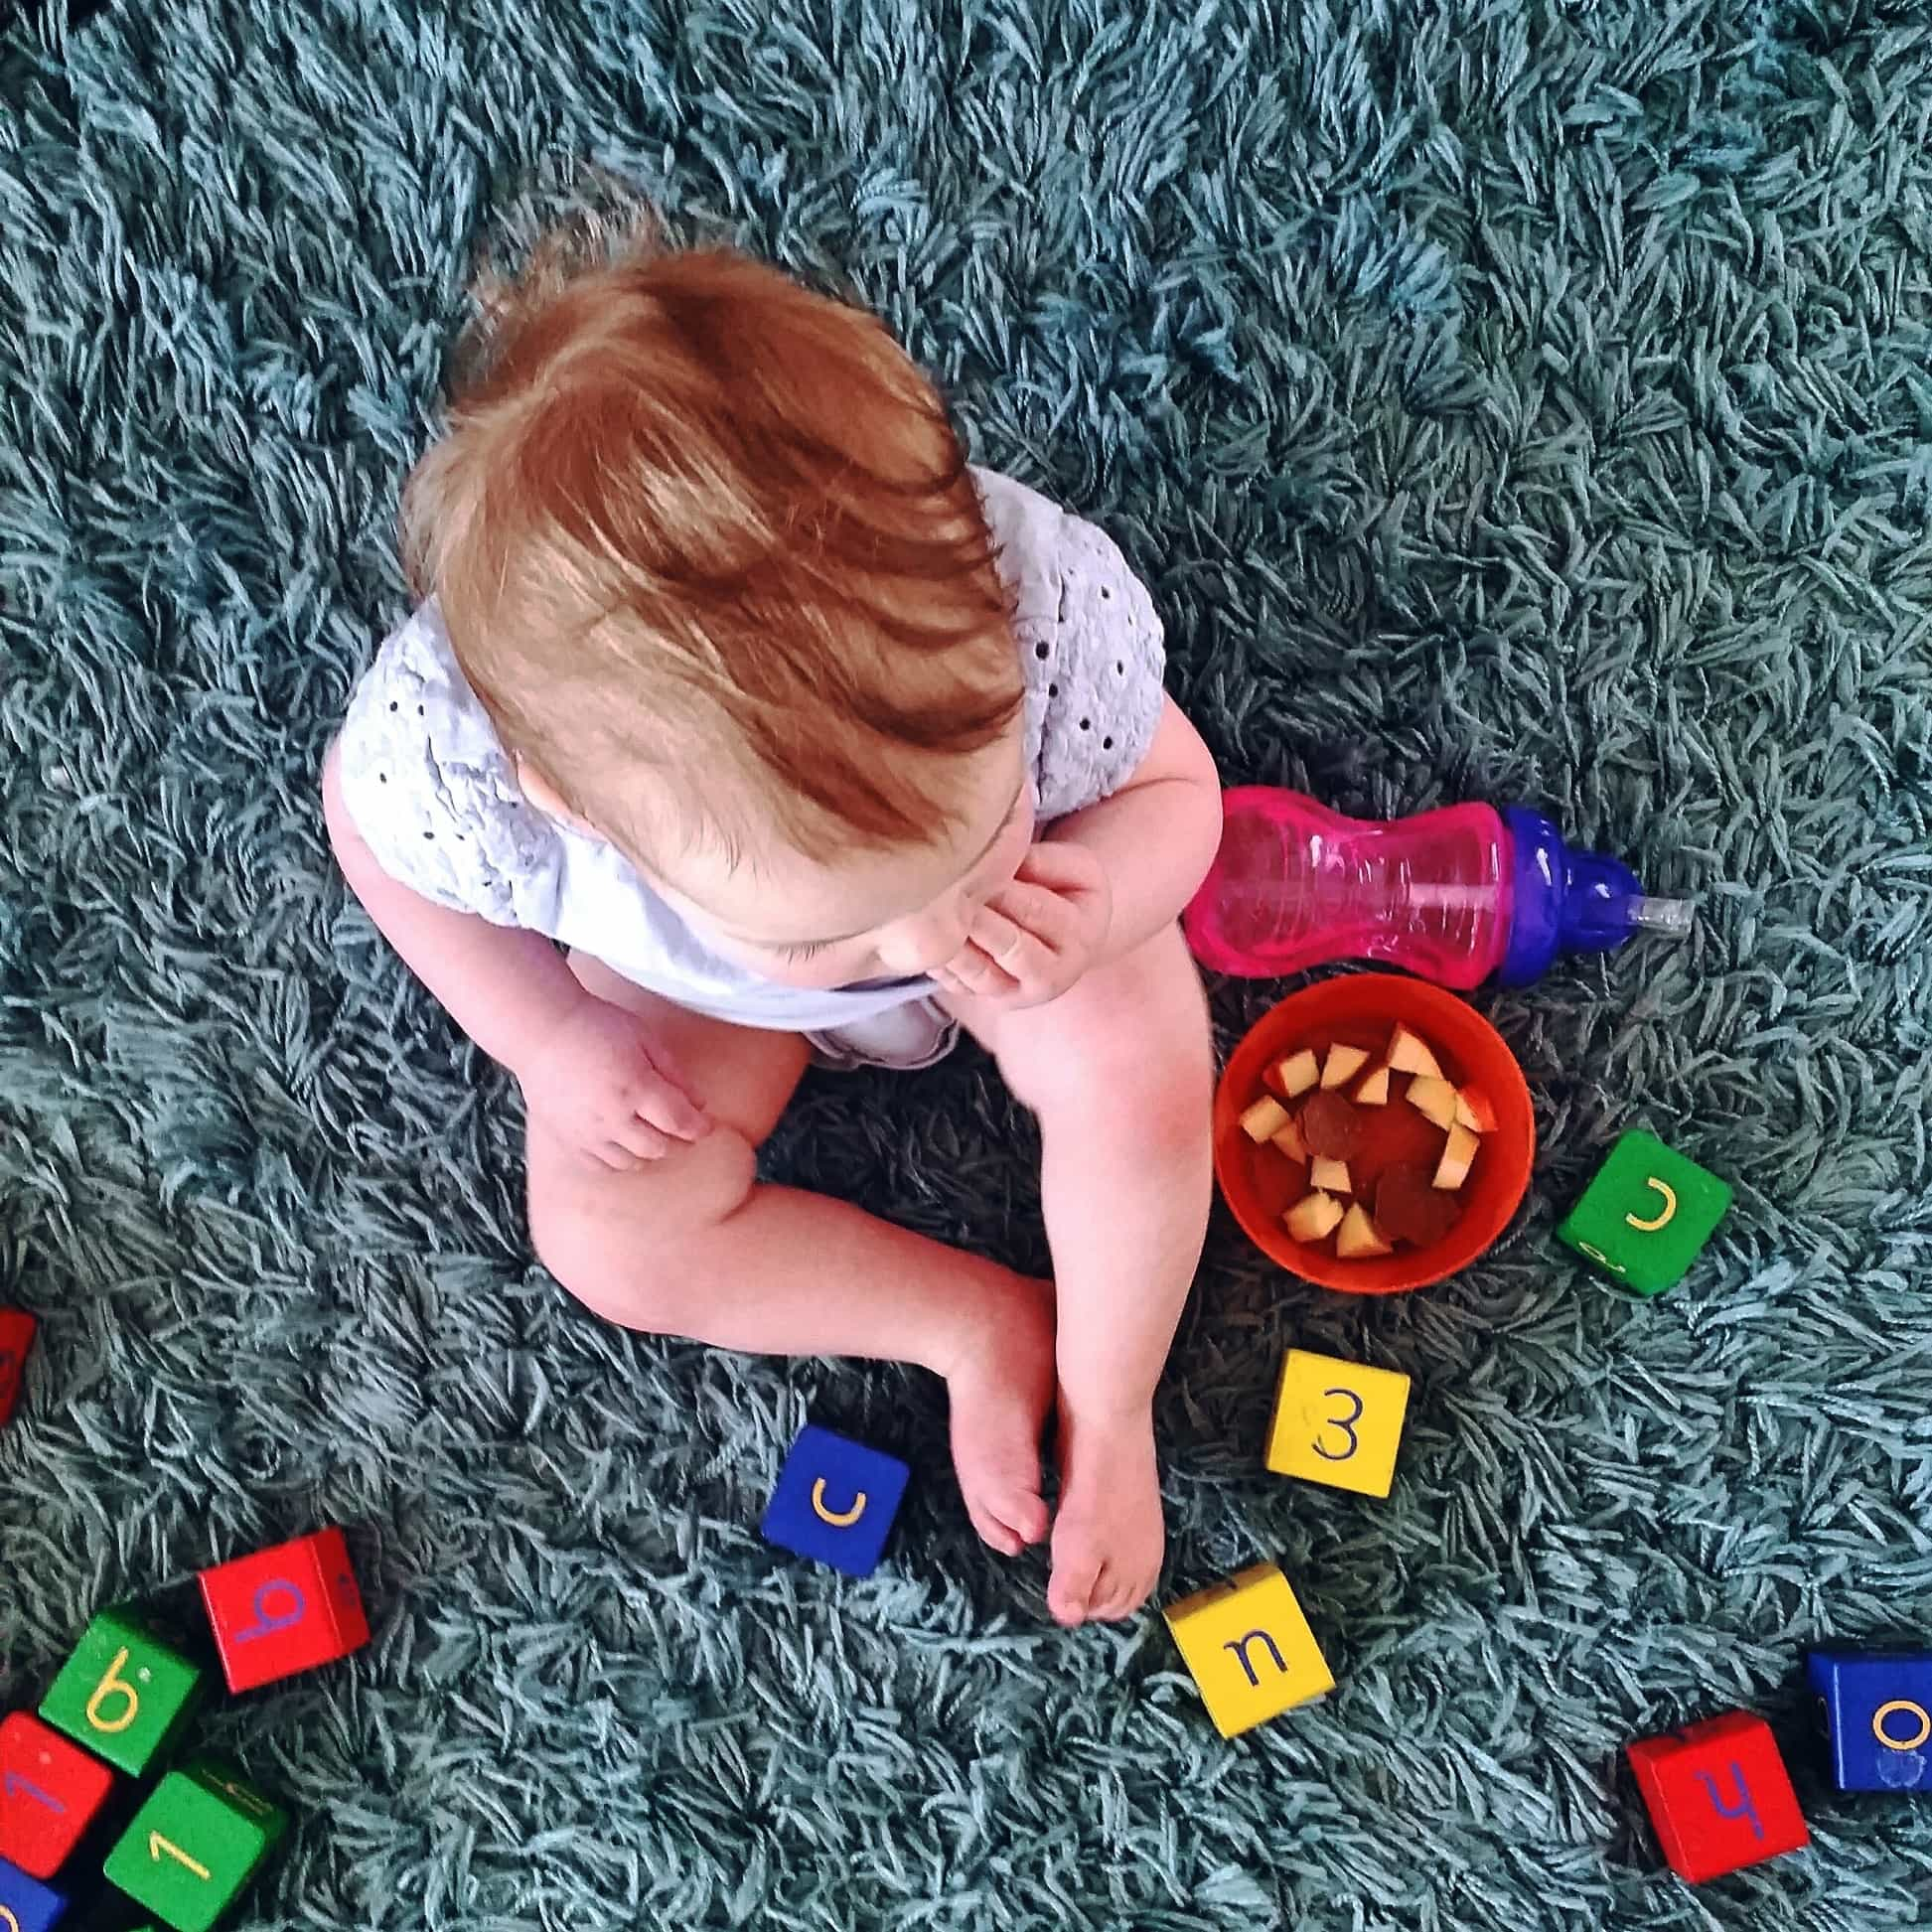 Baby from above with blocks and straw cup next to her